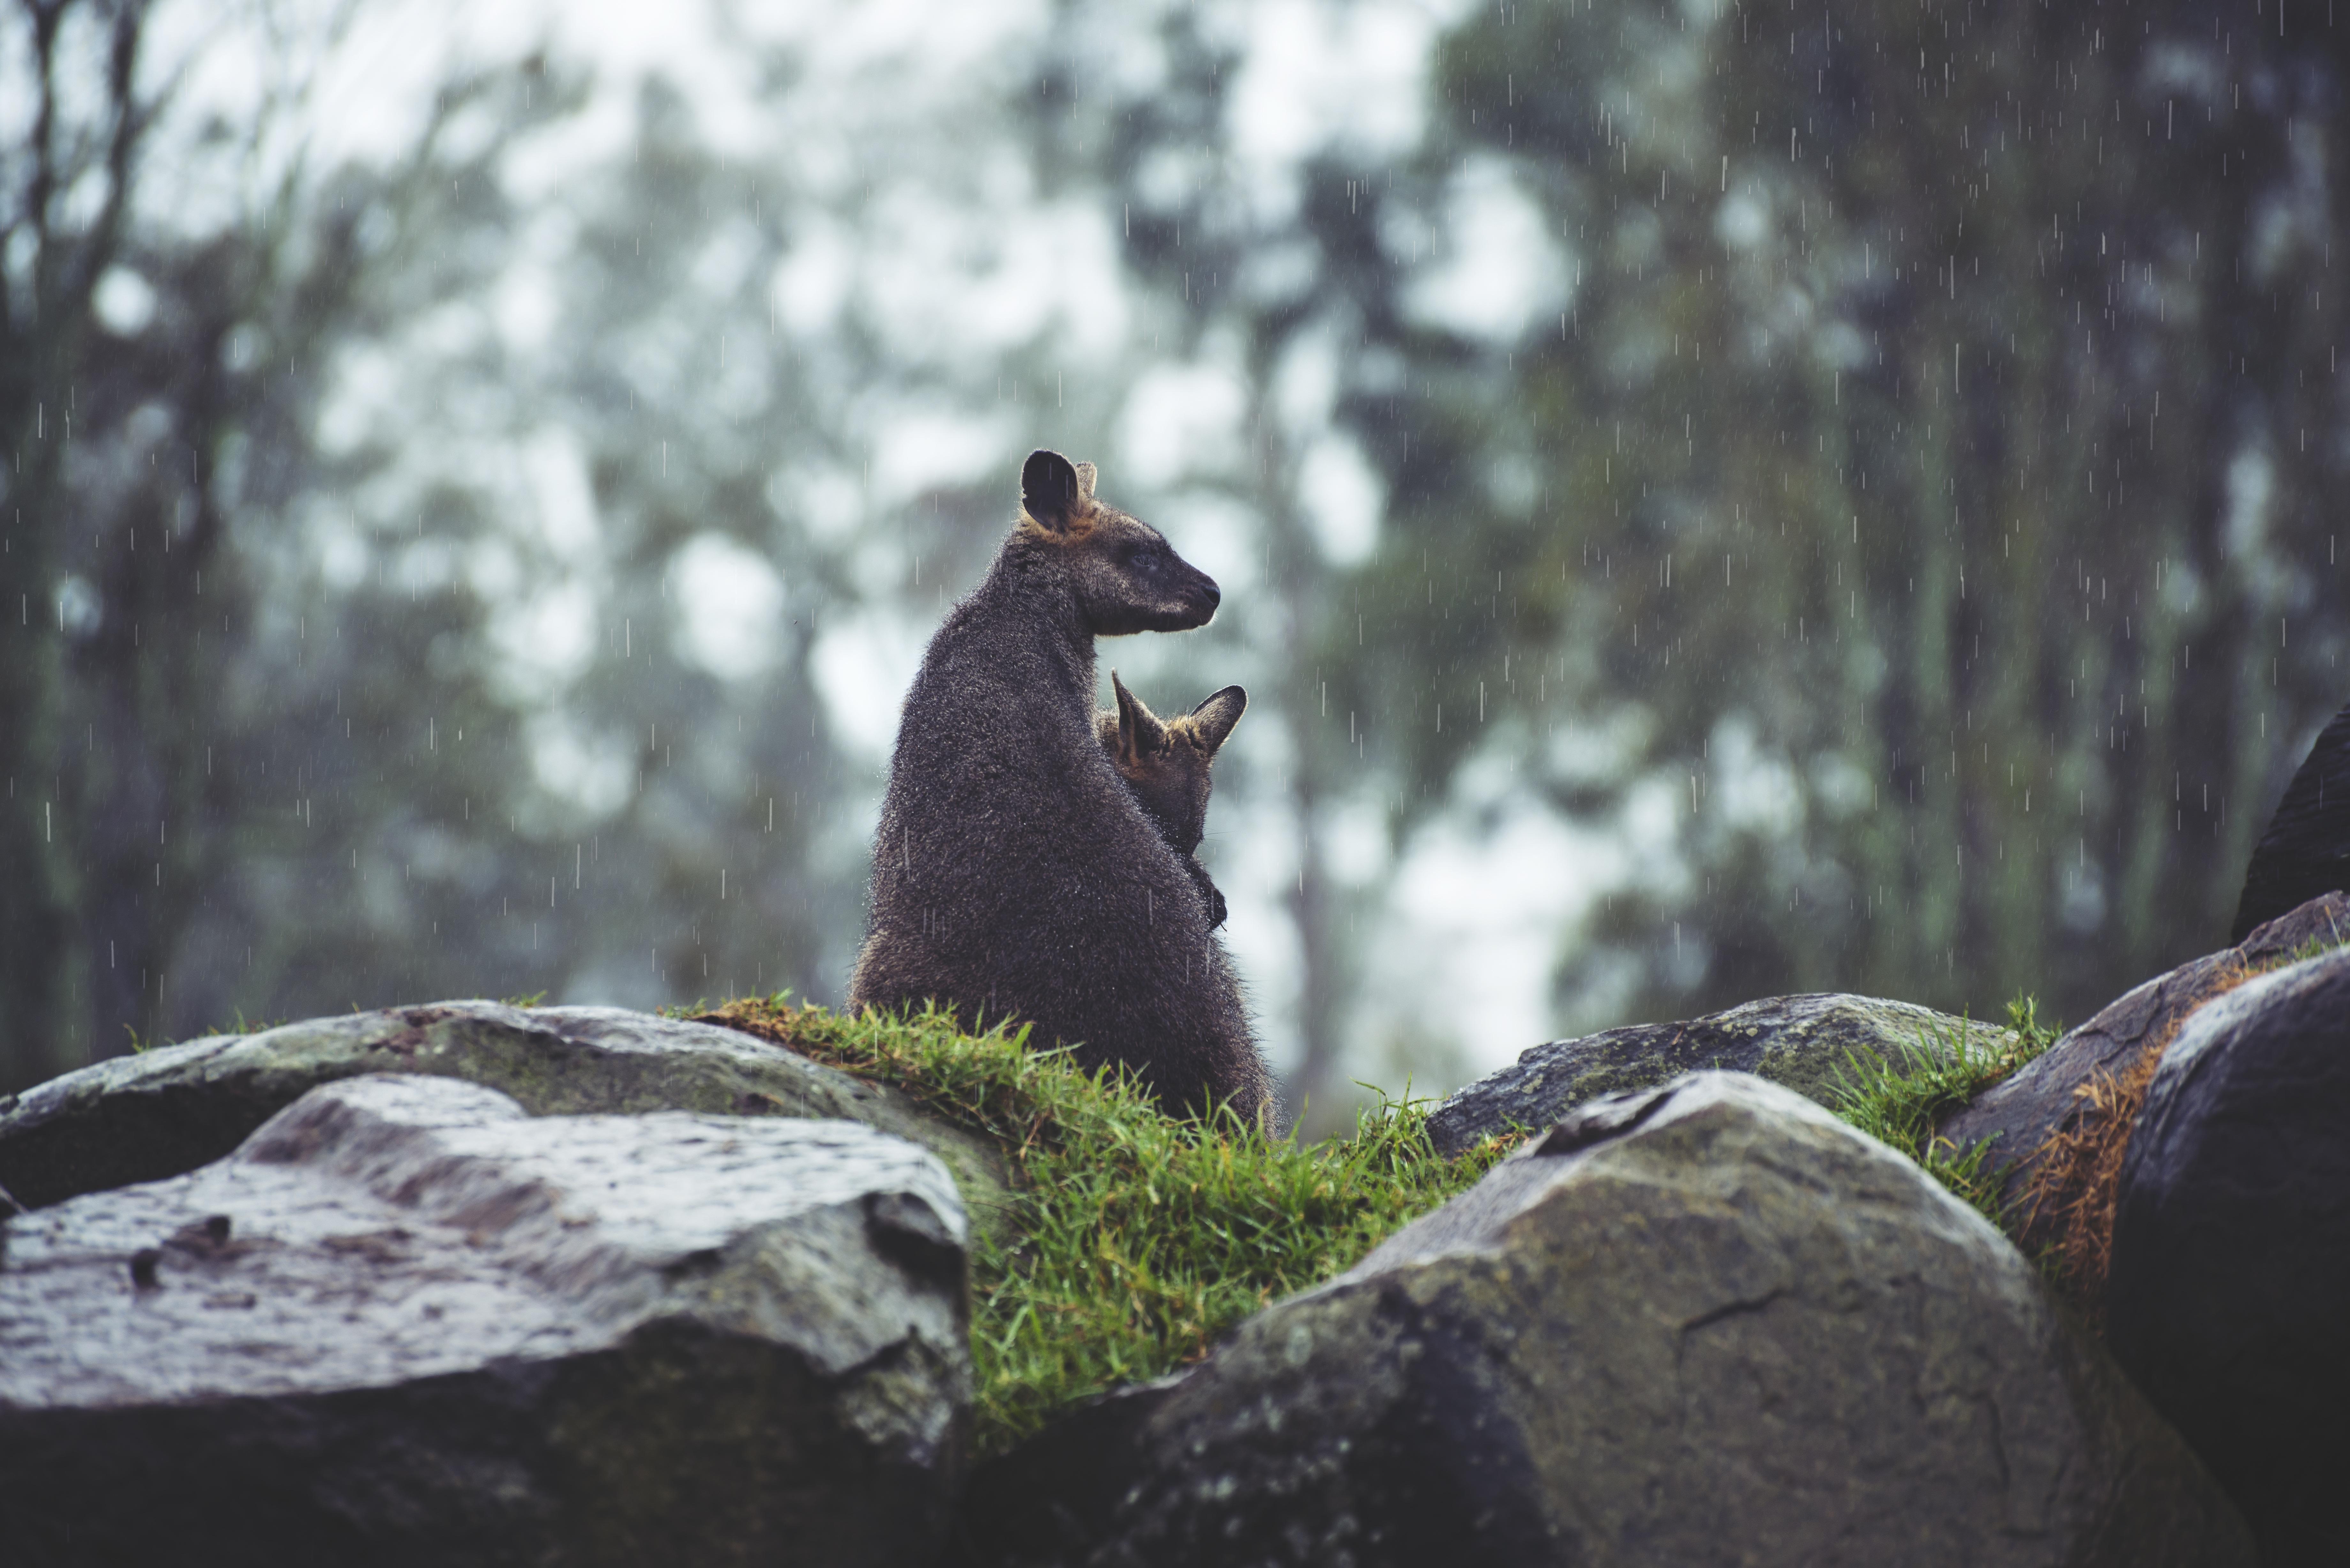 51765 download wallpaper Animals, Kangaroo, Couple, Pair, Young, Joey, Grass, Stones, Rain screensavers and pictures for free